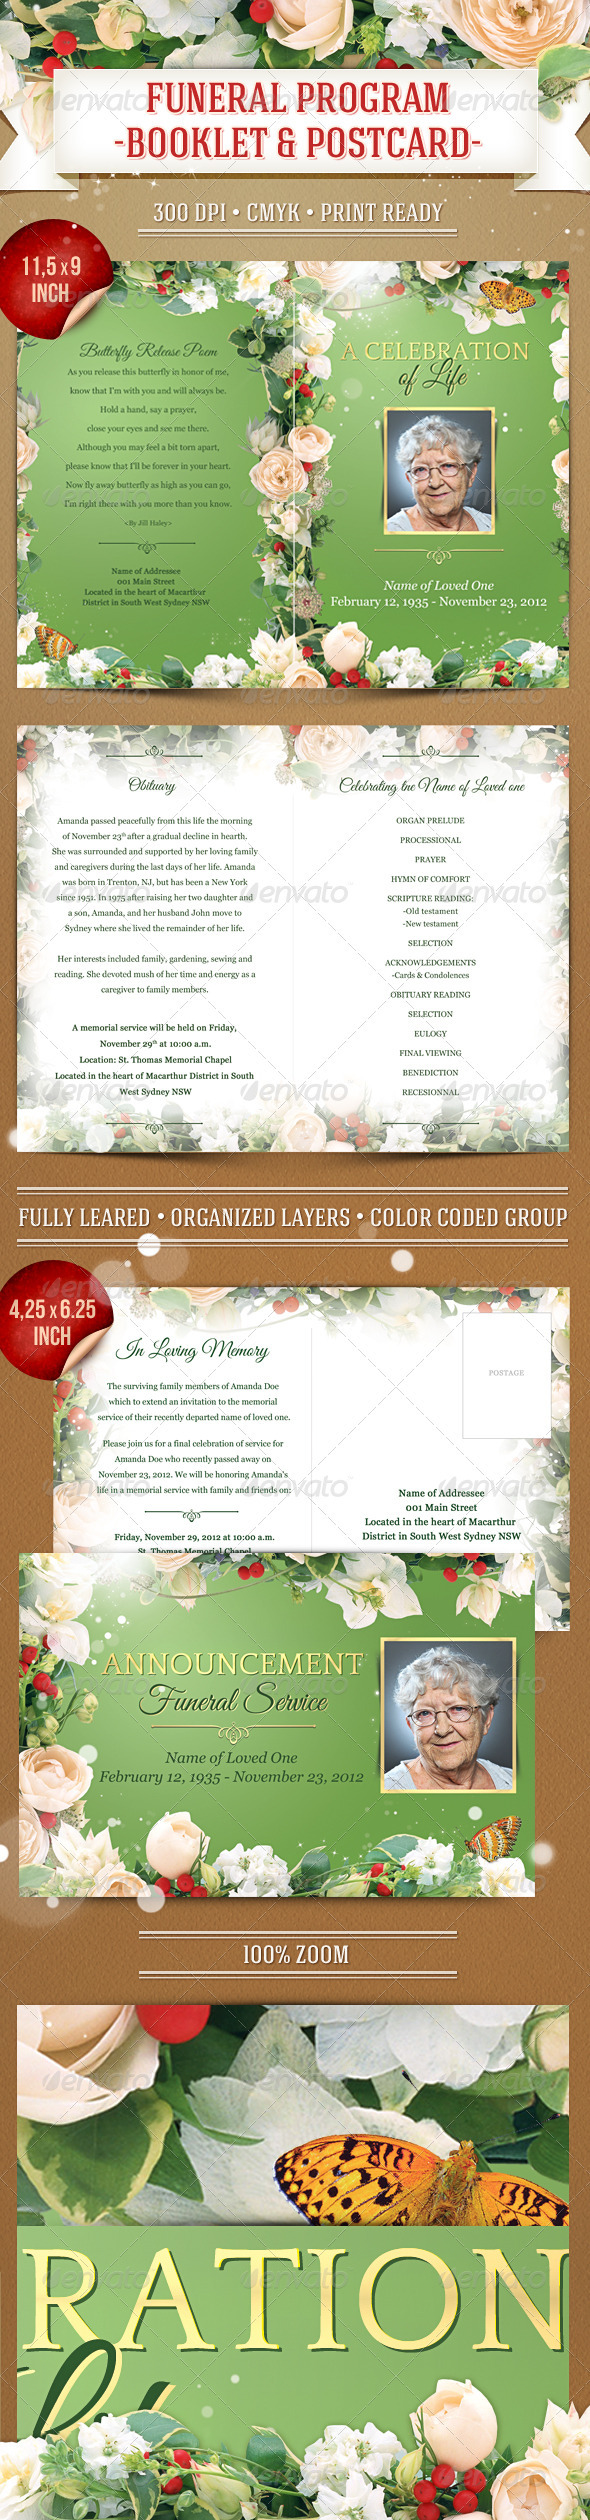 GraphicRiver Funeral Program Template Booklet & Postcard 3656880